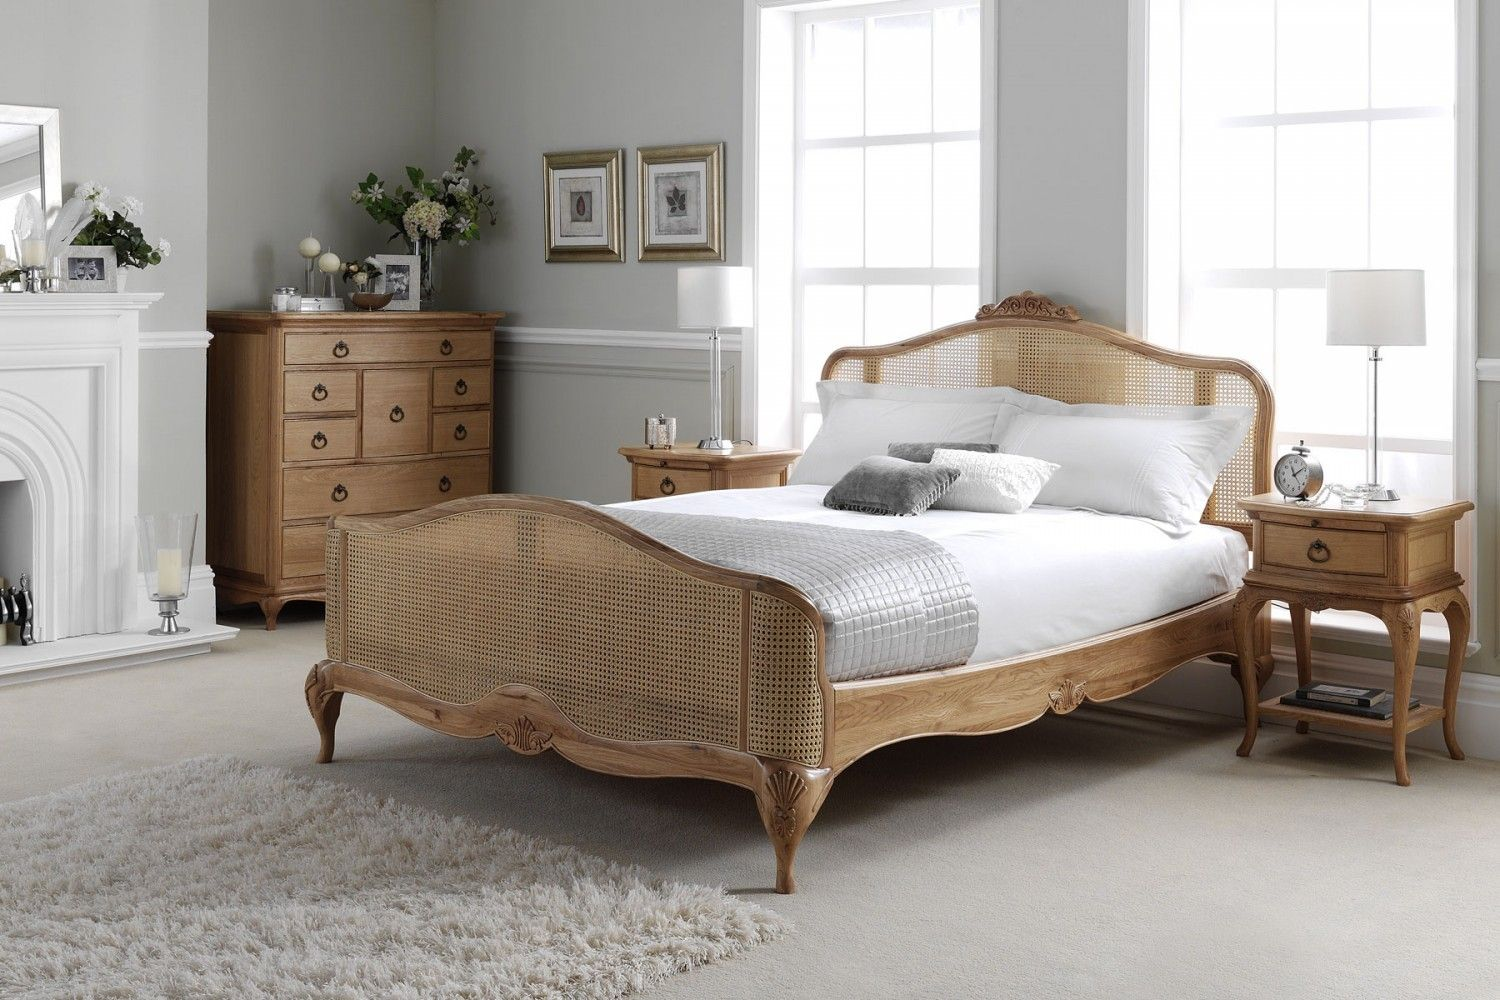 Charlotte French Inspired Oak Rattan Bed | Solid Oak Contemporary Beds | French beds | French Bedroom Furniture